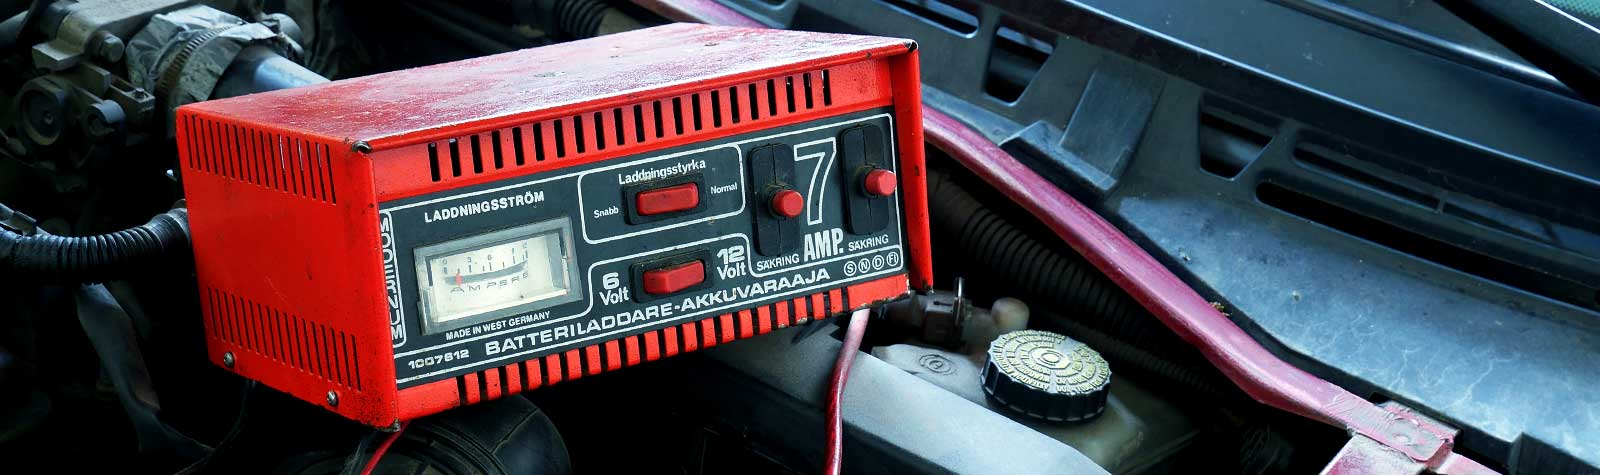 How to Read a Battery Charger Amp Meter- A Complete Guideline, Step by Step